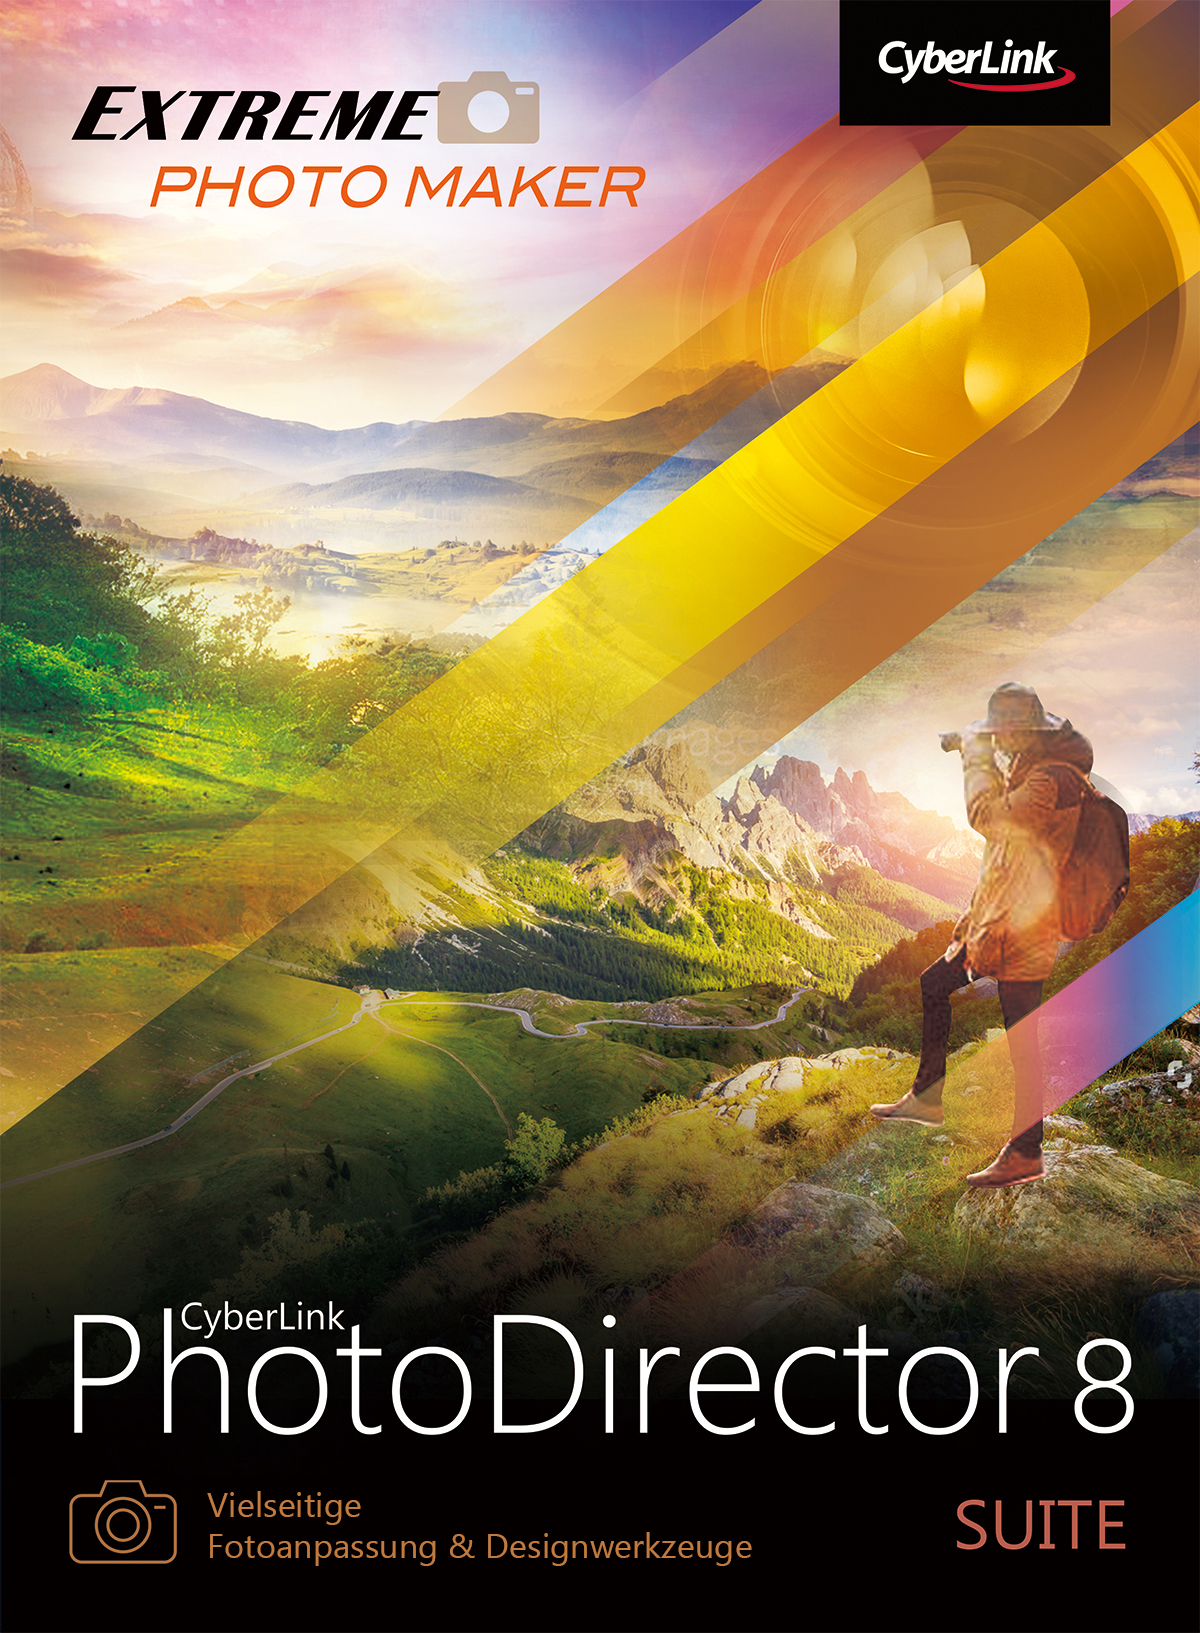 cyberlink-photodirector-8-suite-download